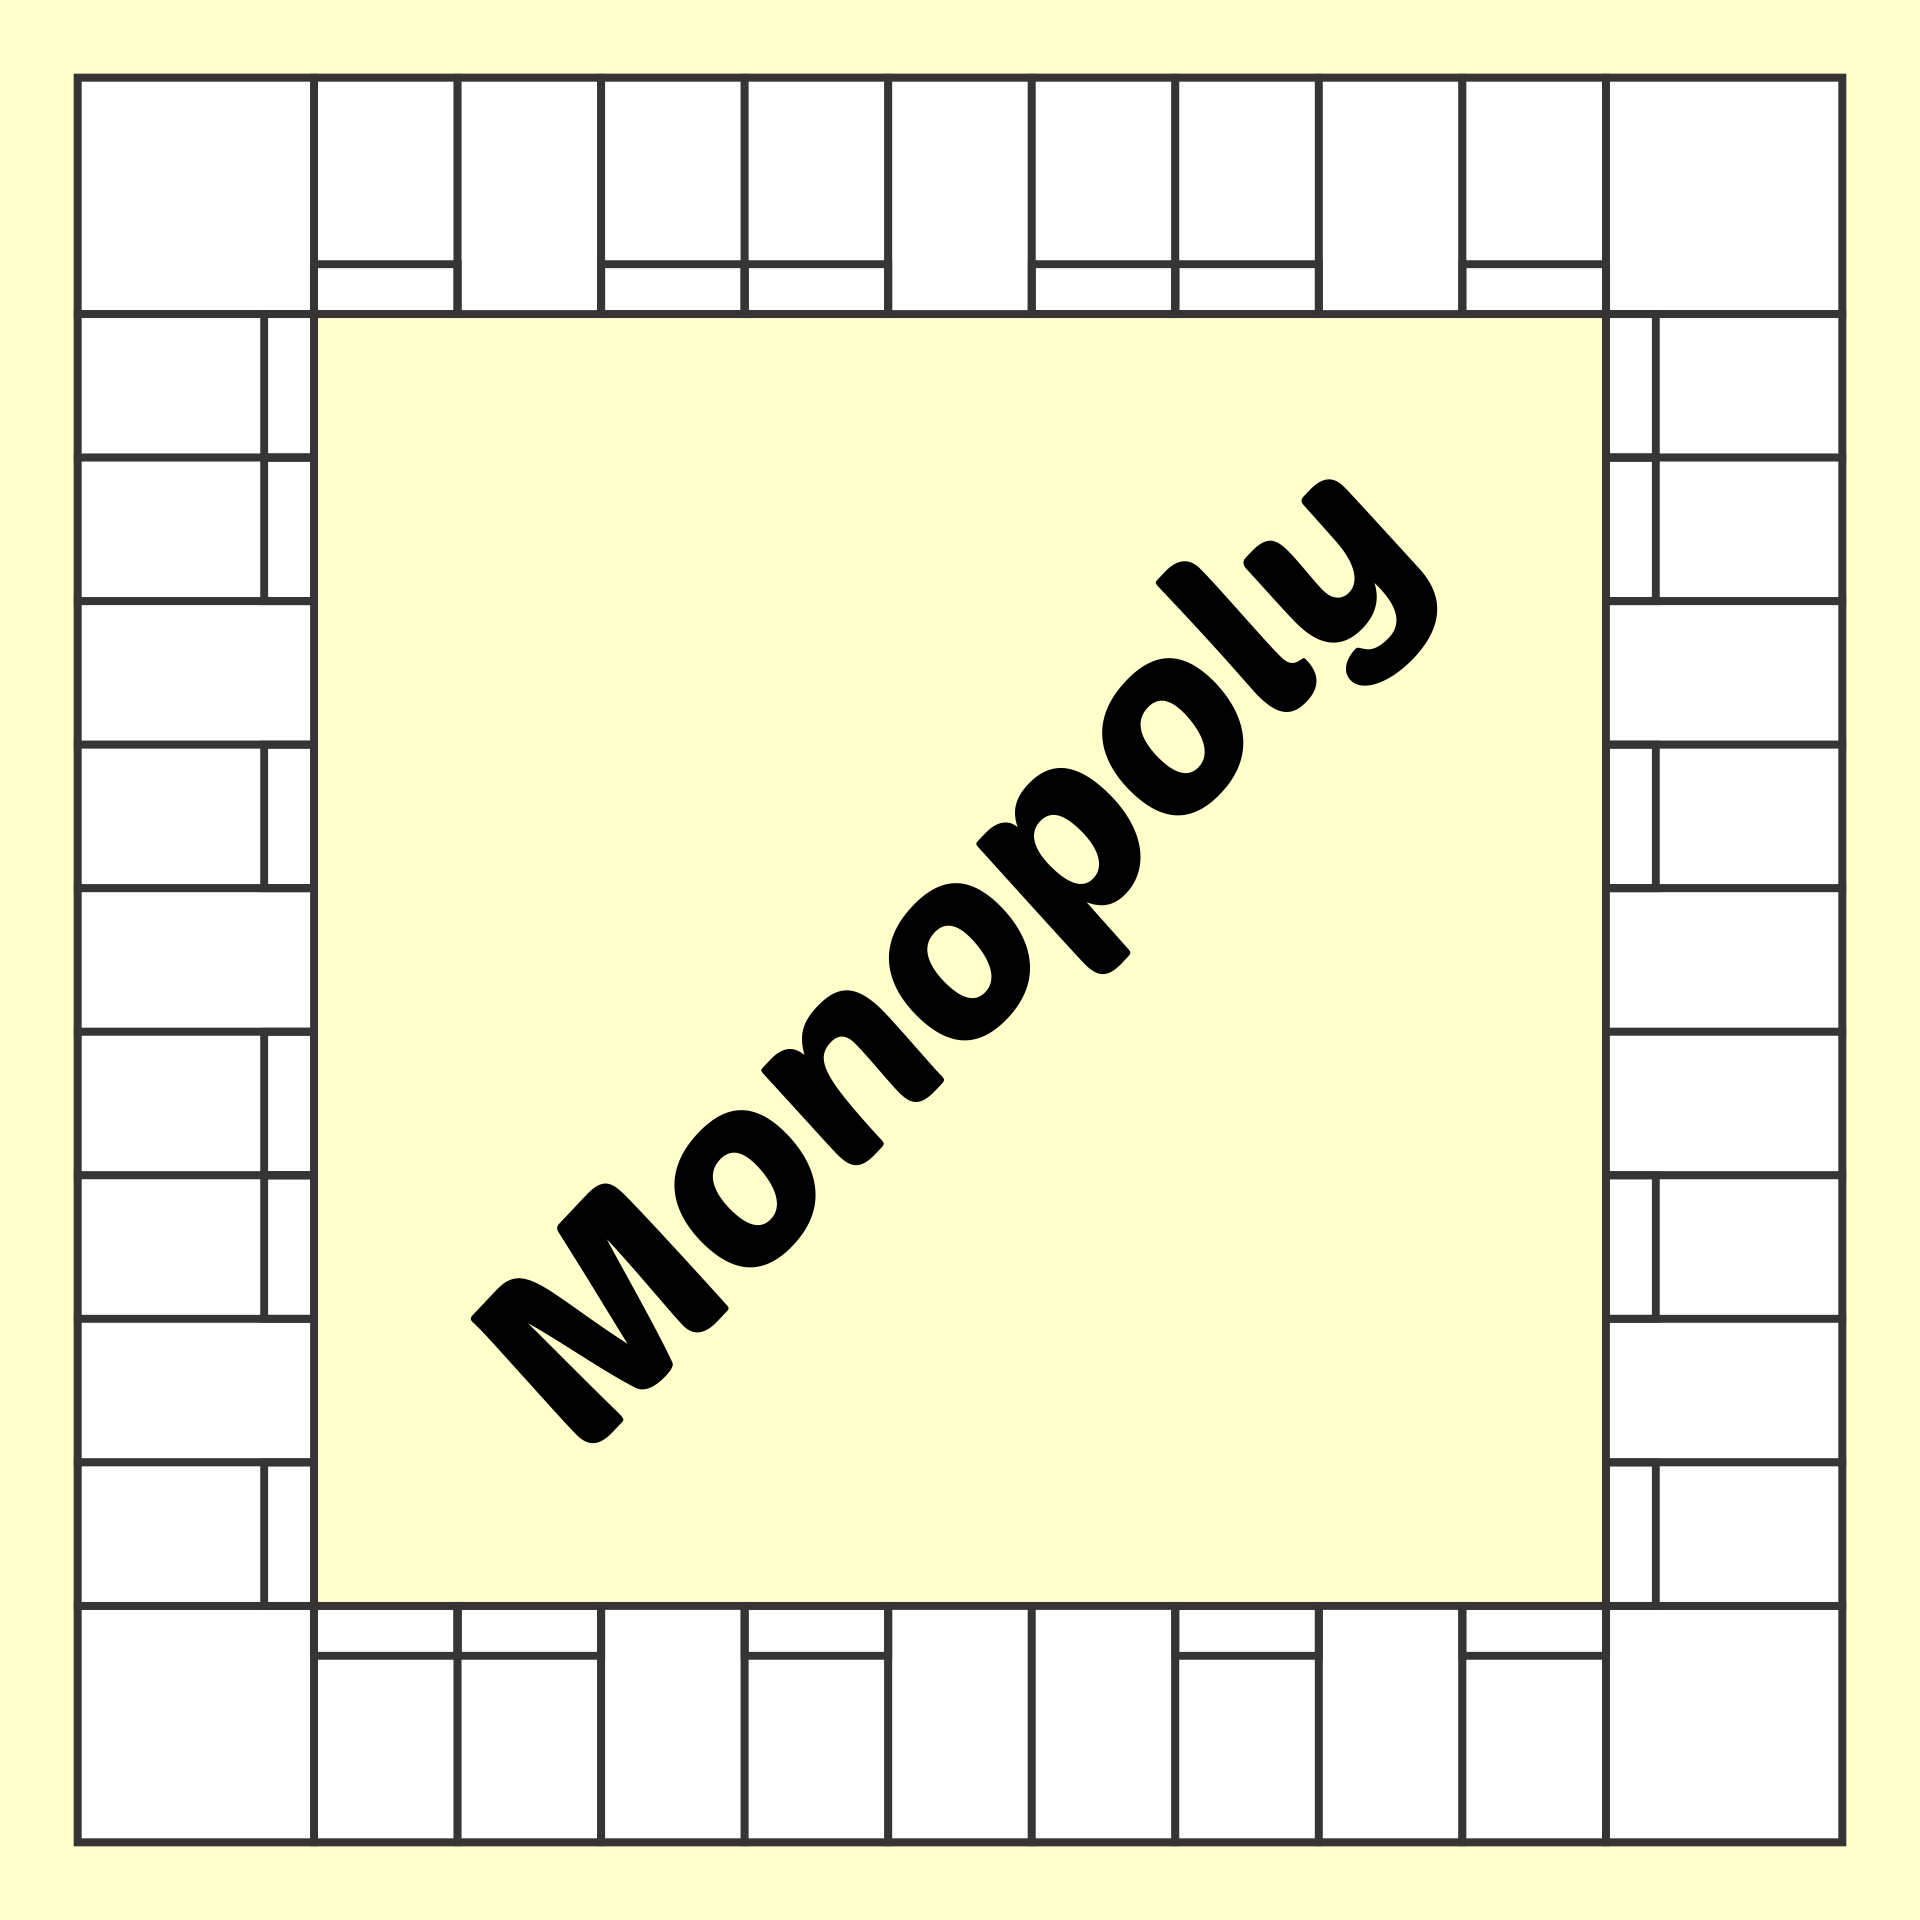 Blank Monopoly Board Game